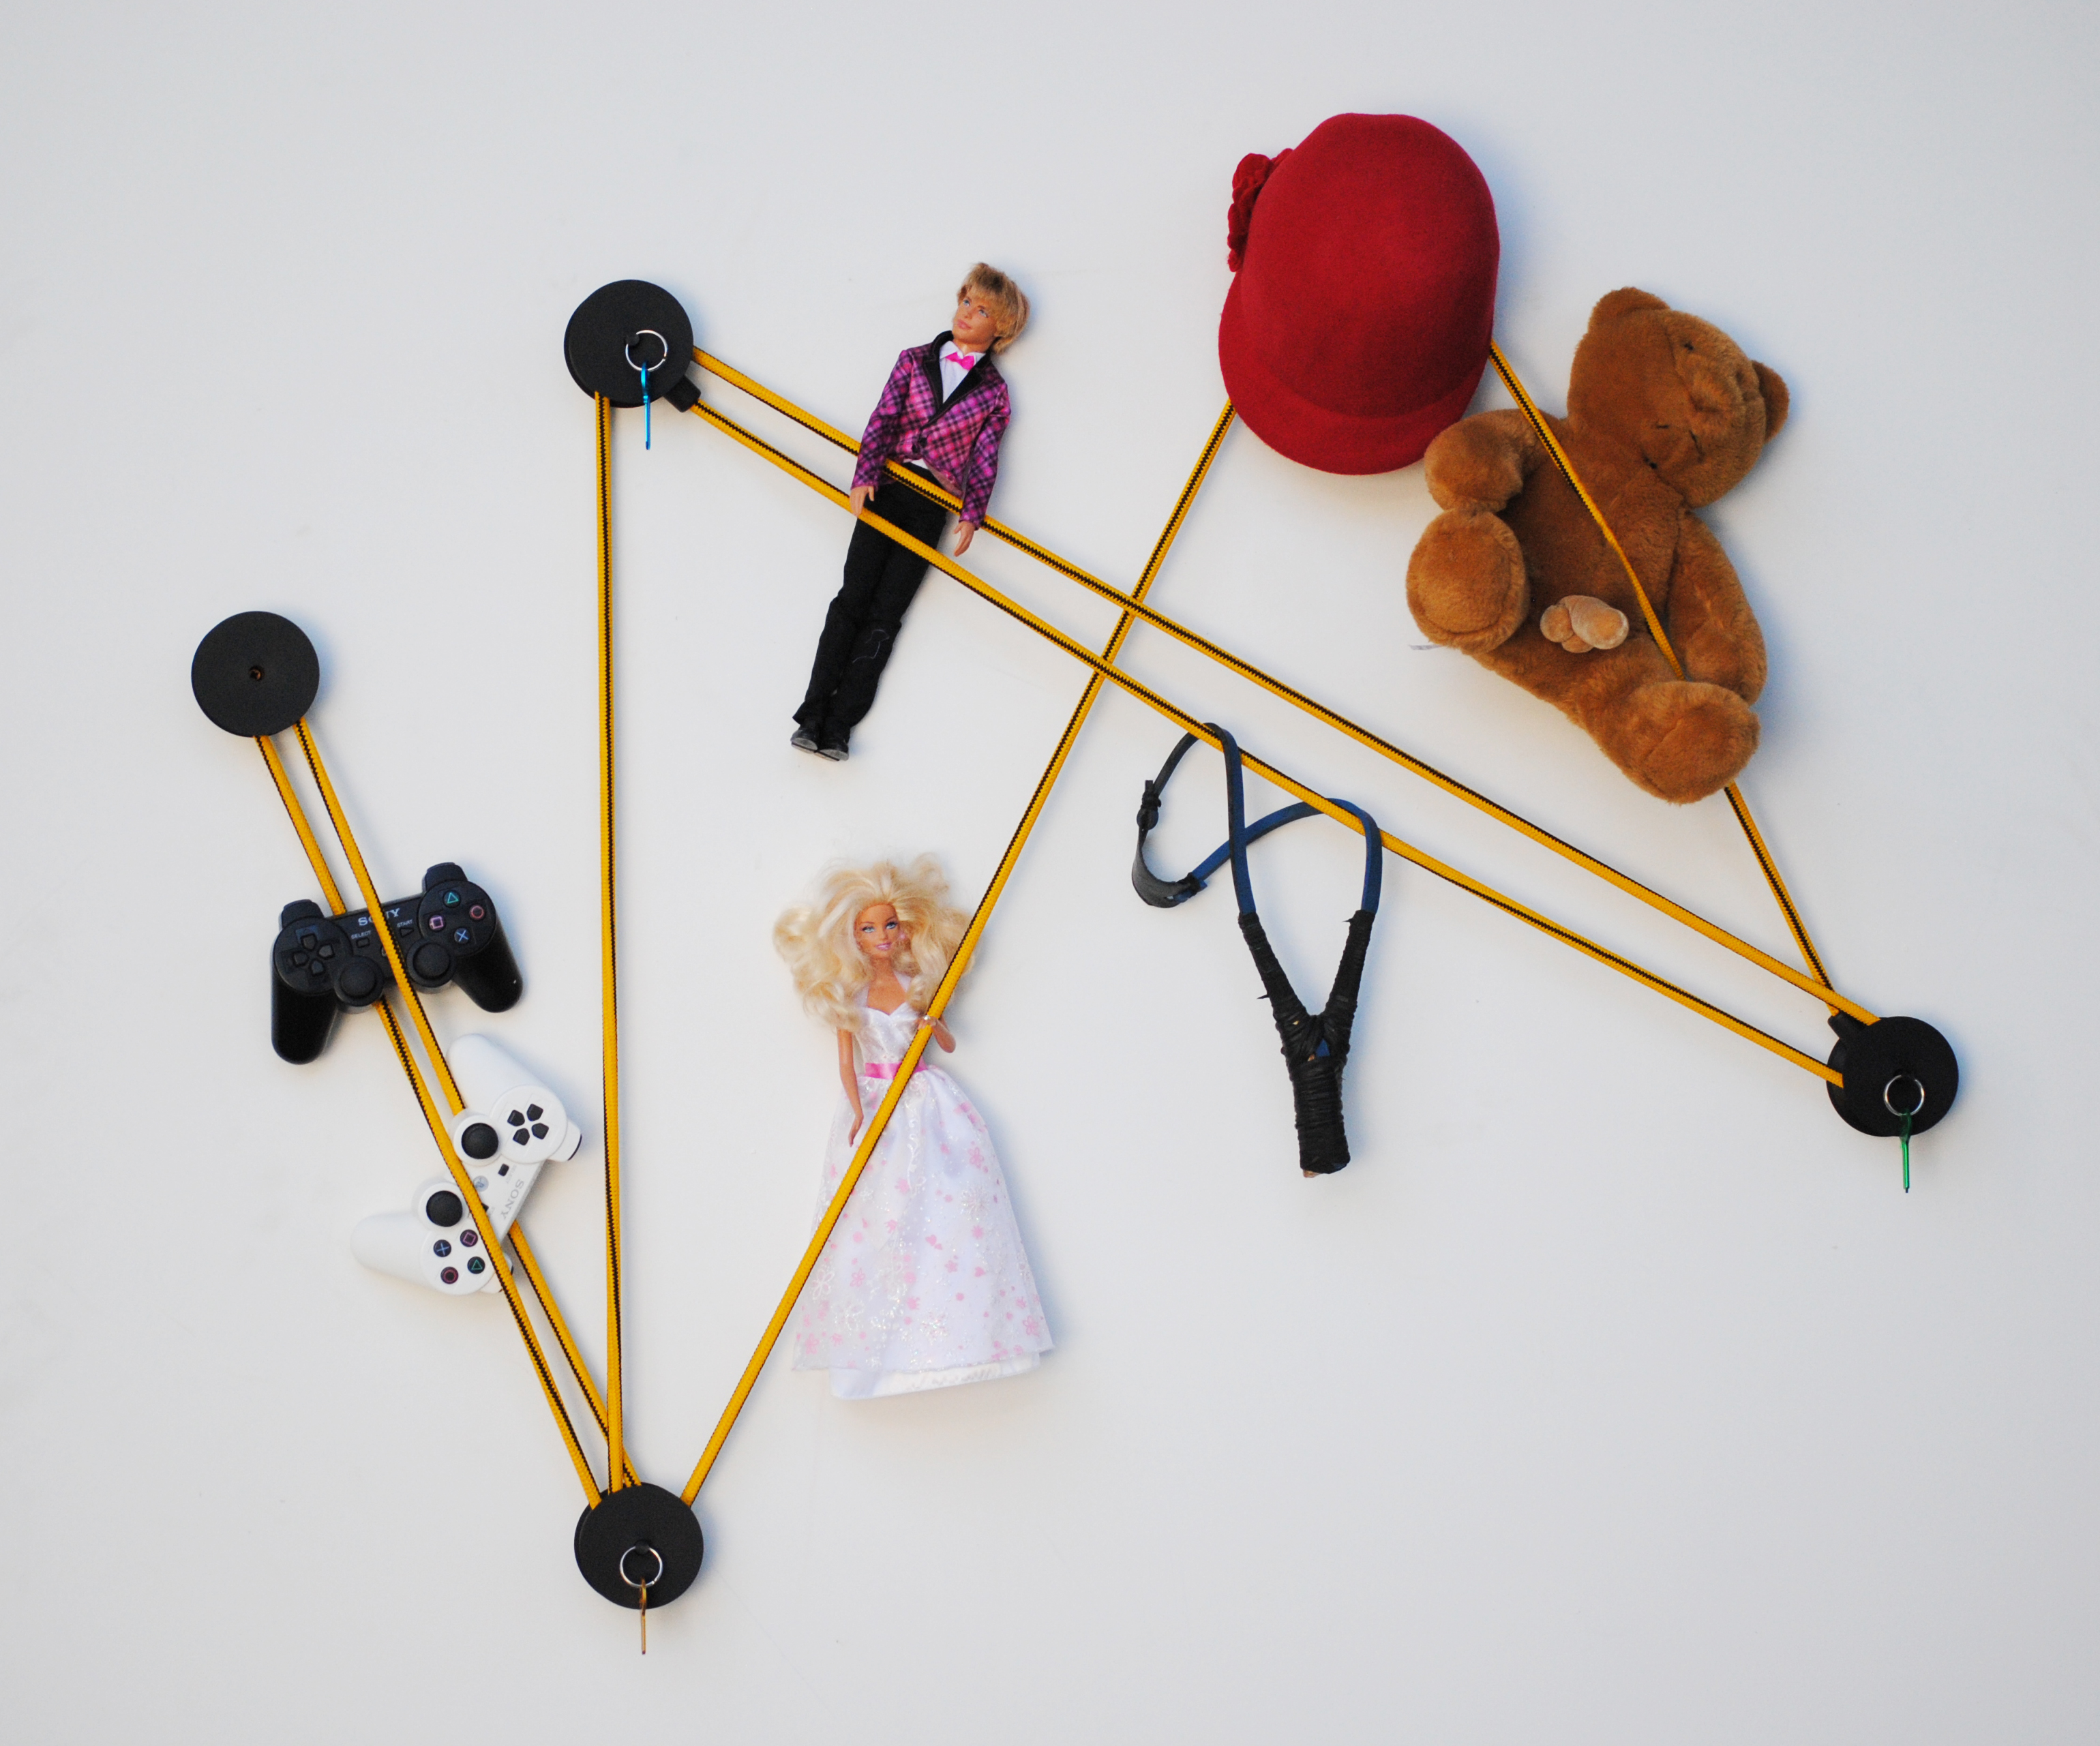 tit black coat hook in pvc and keychain with objects and toys on the elastic rope